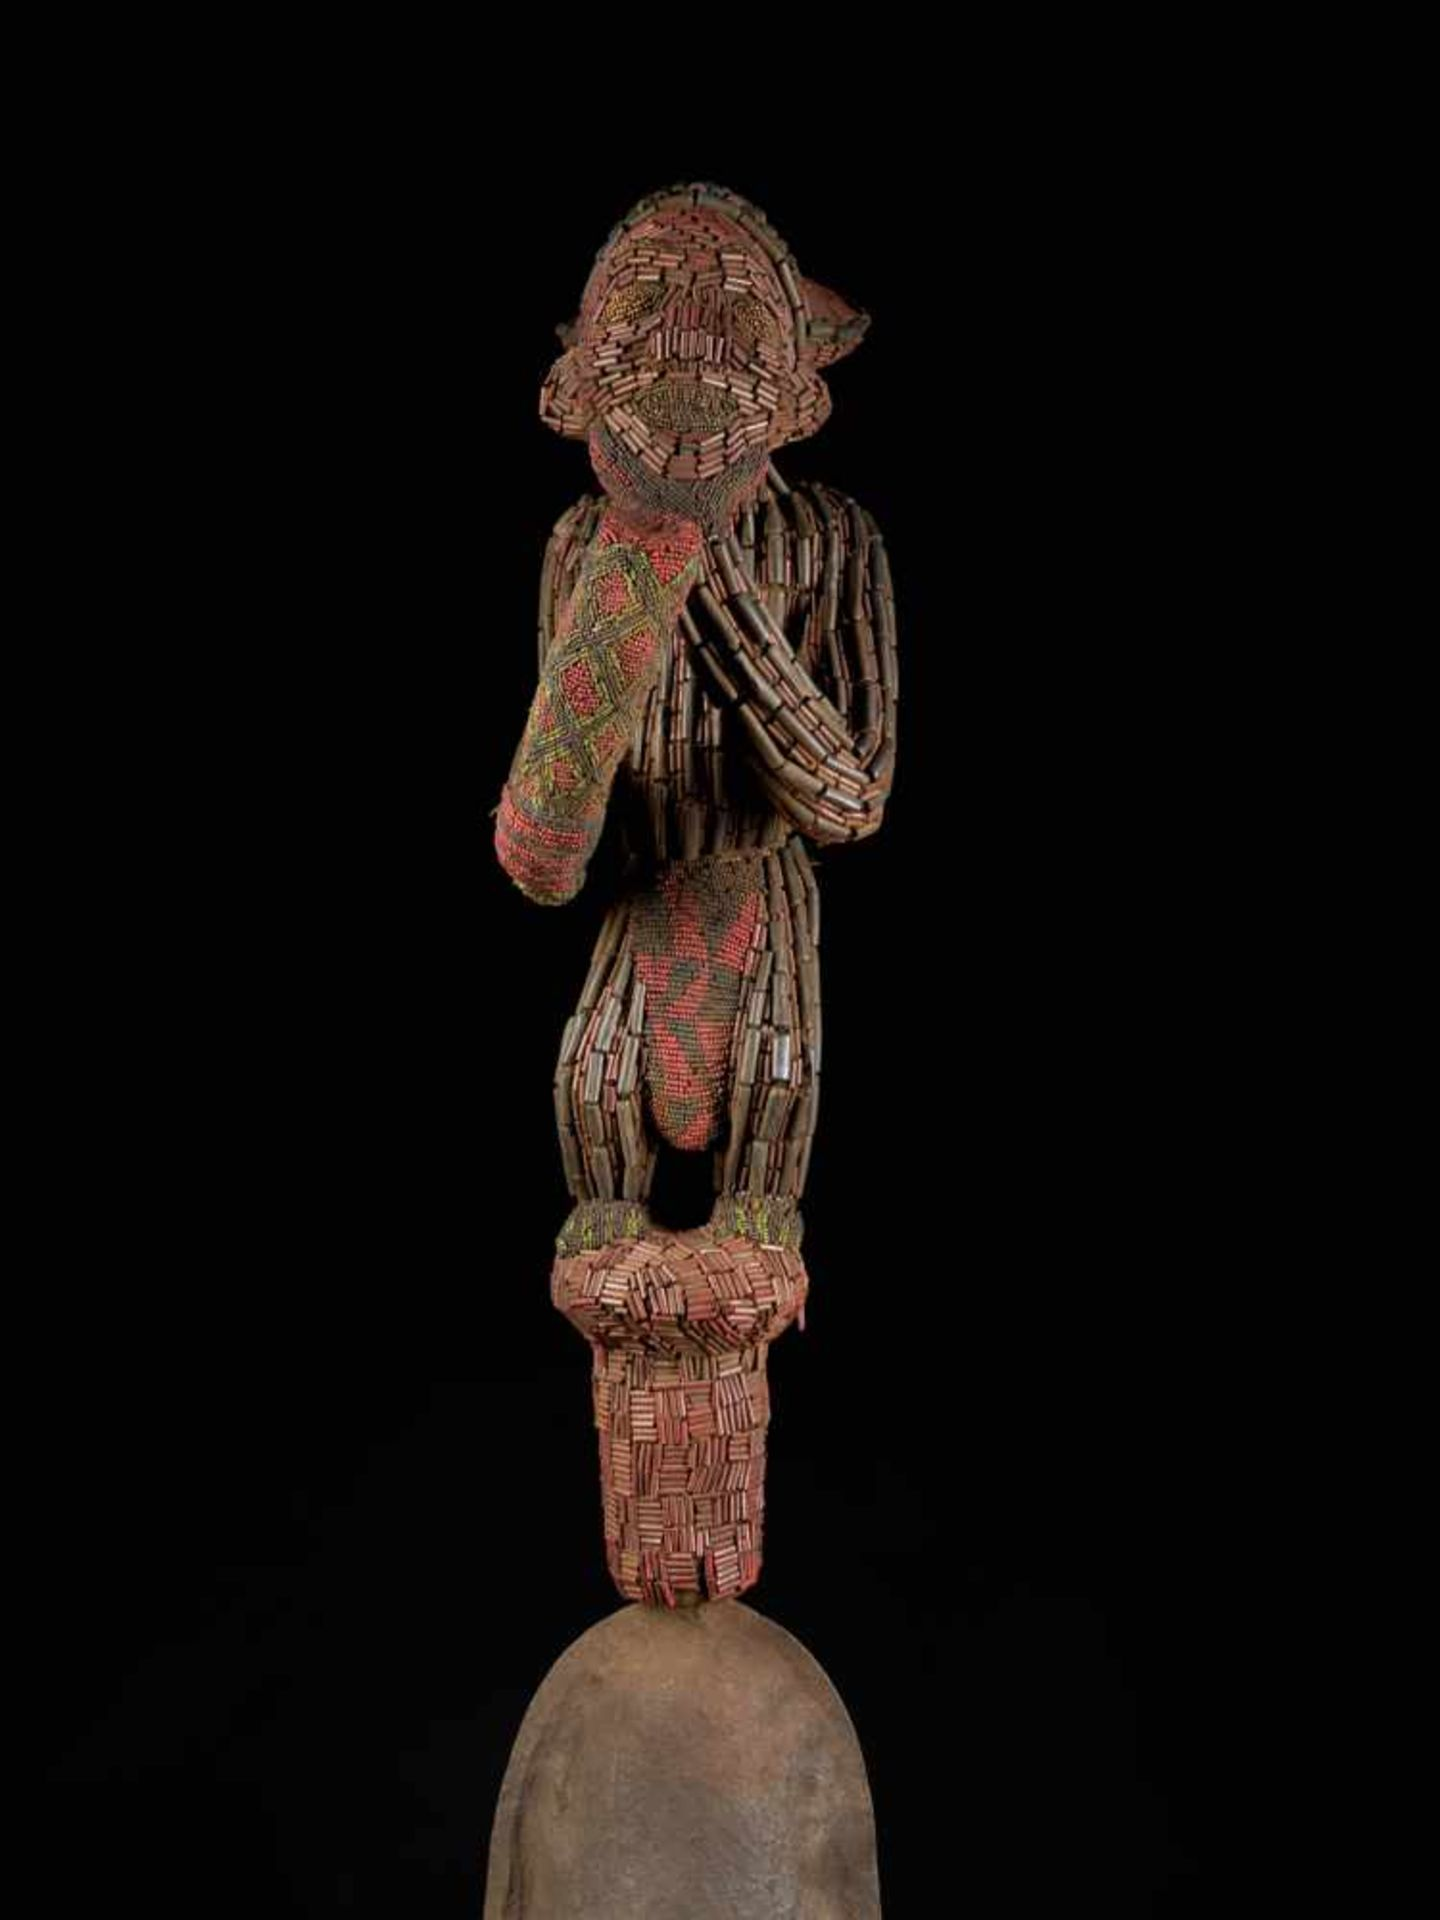 Ceremonial Royal Gong With Beaded Figure - Tribal ArtThis ceremonial gong features a gorgeous figure - Bild 6 aus 8